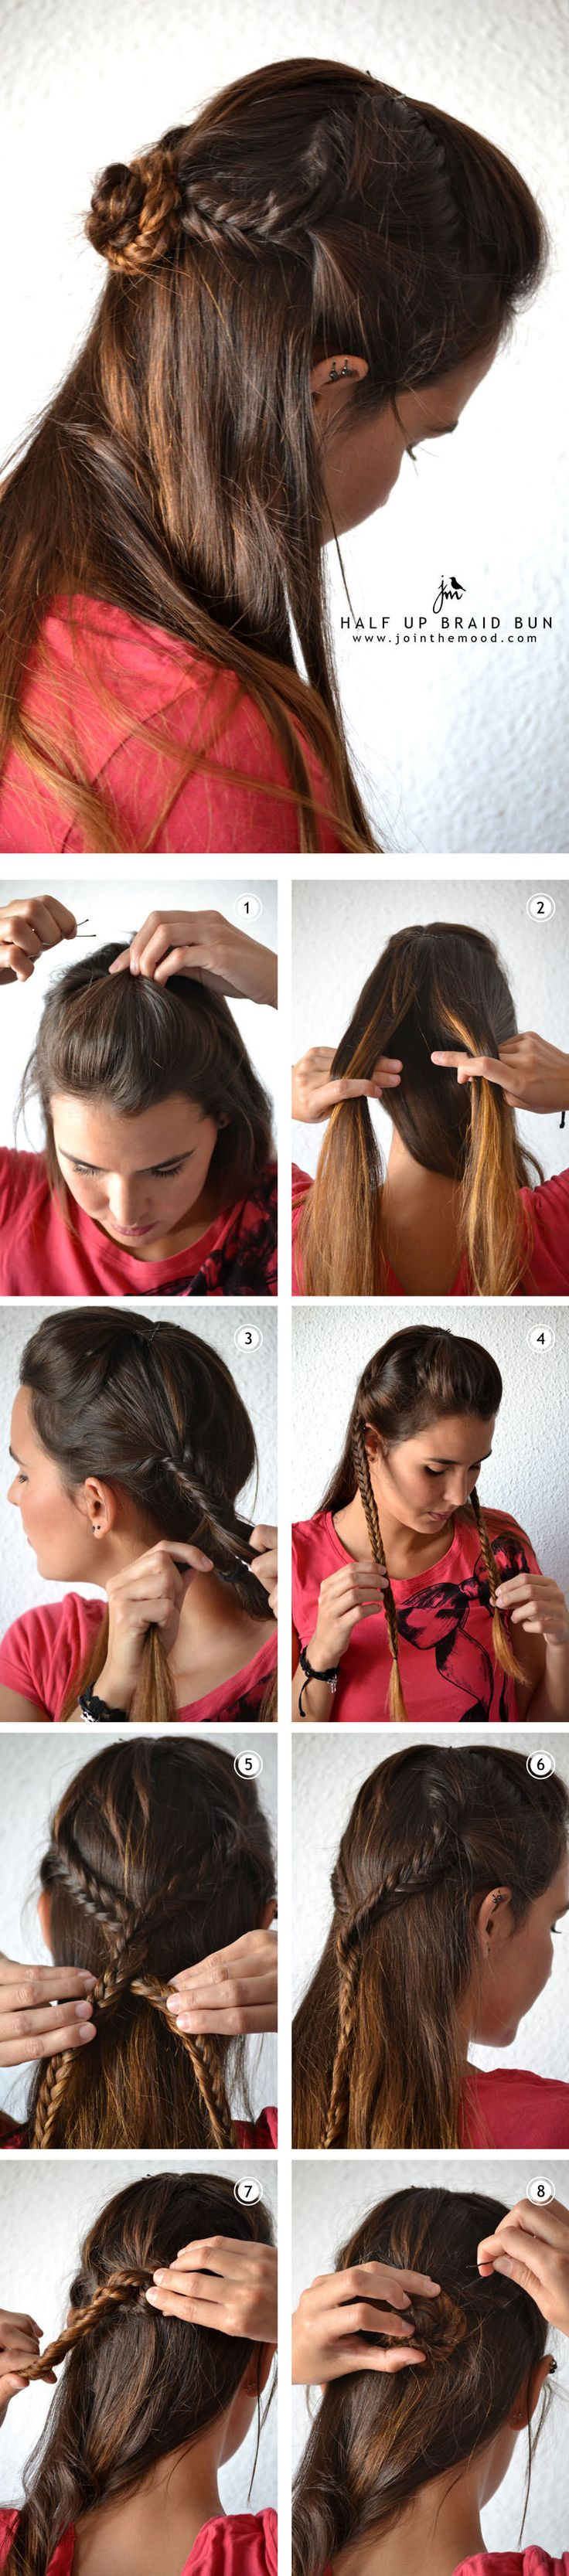 108 best half up half down looks images on pinterest | hairstyles